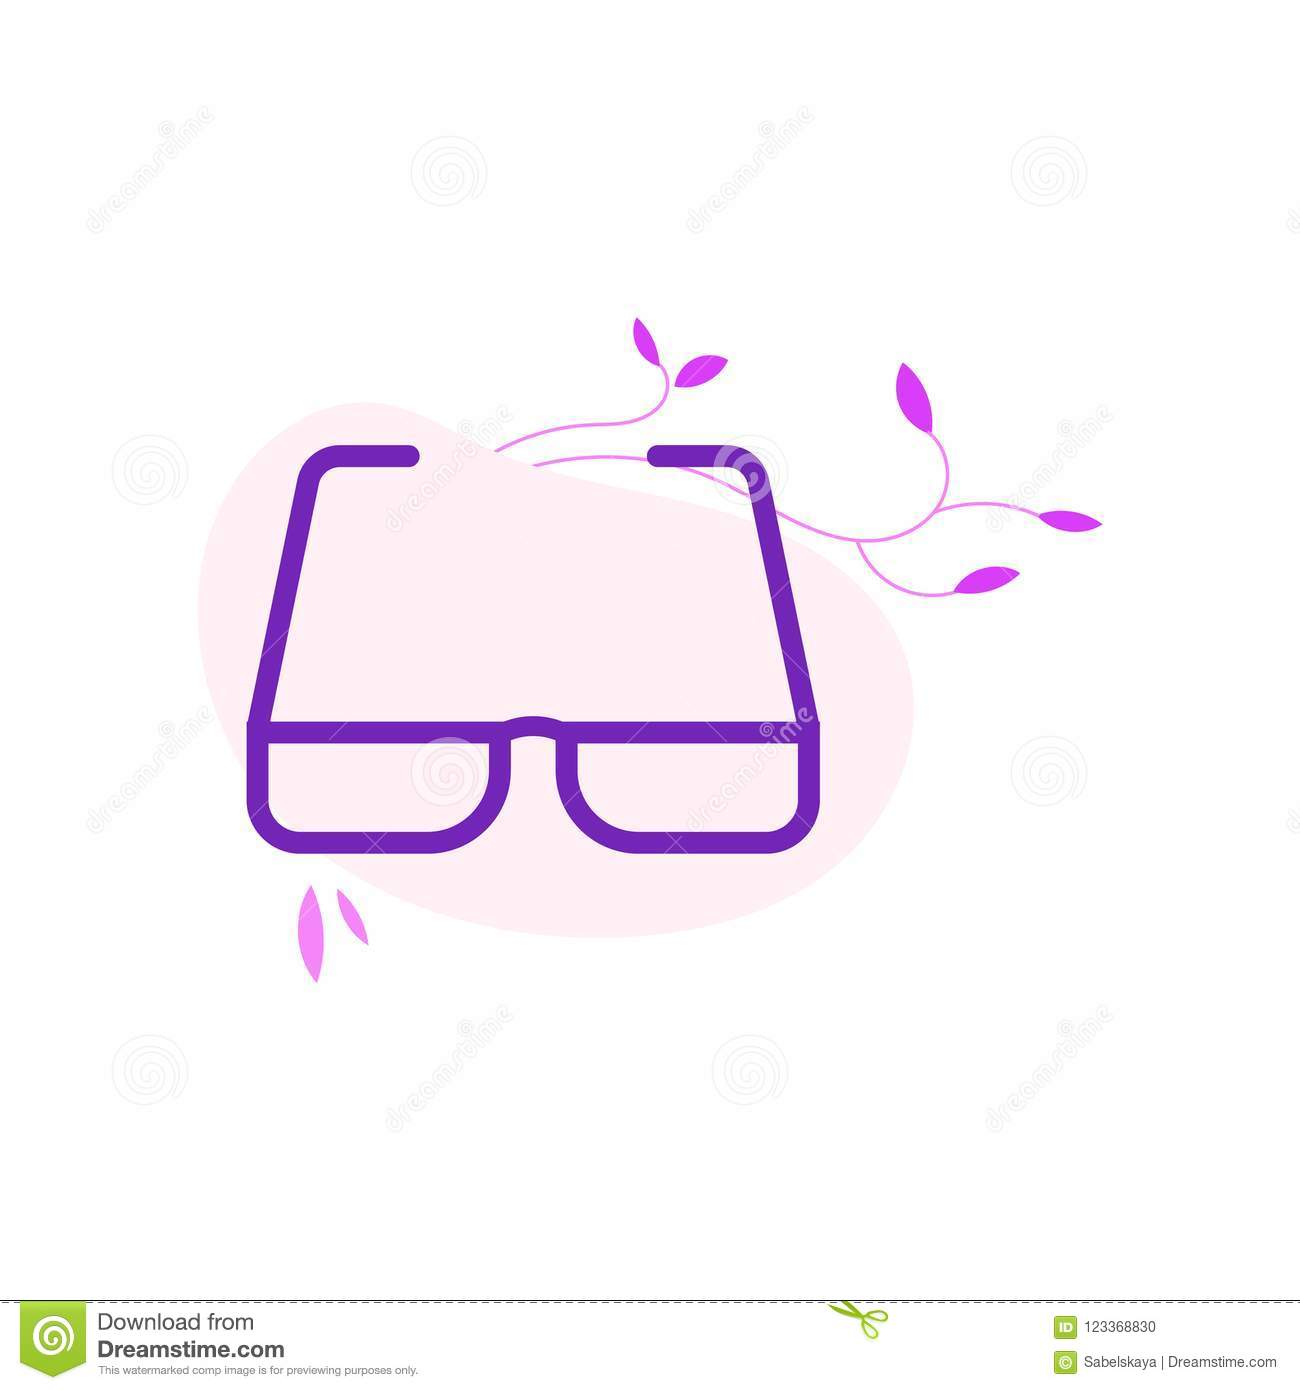 1b9adc4a9197 Eyeglasses with violet frame in flat style isolated on white background  with decoration.